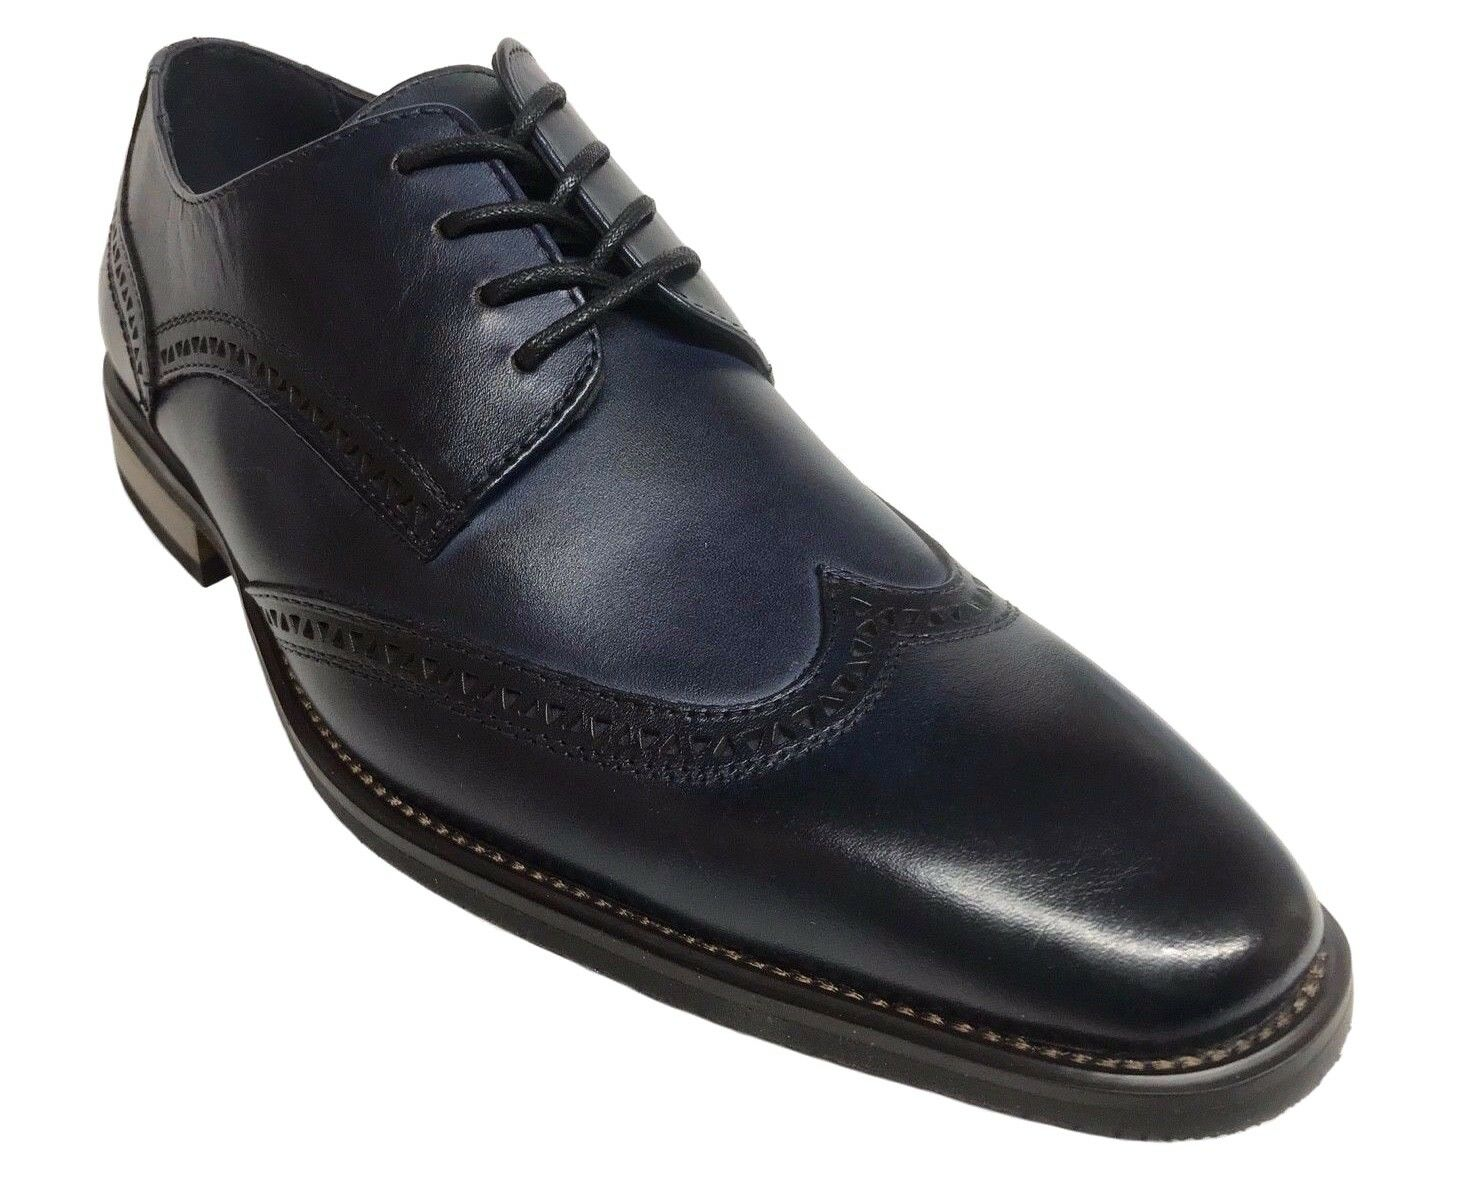 La Milano Men's Oxford Wing Tip Navy Leather Dress Shoes A11577